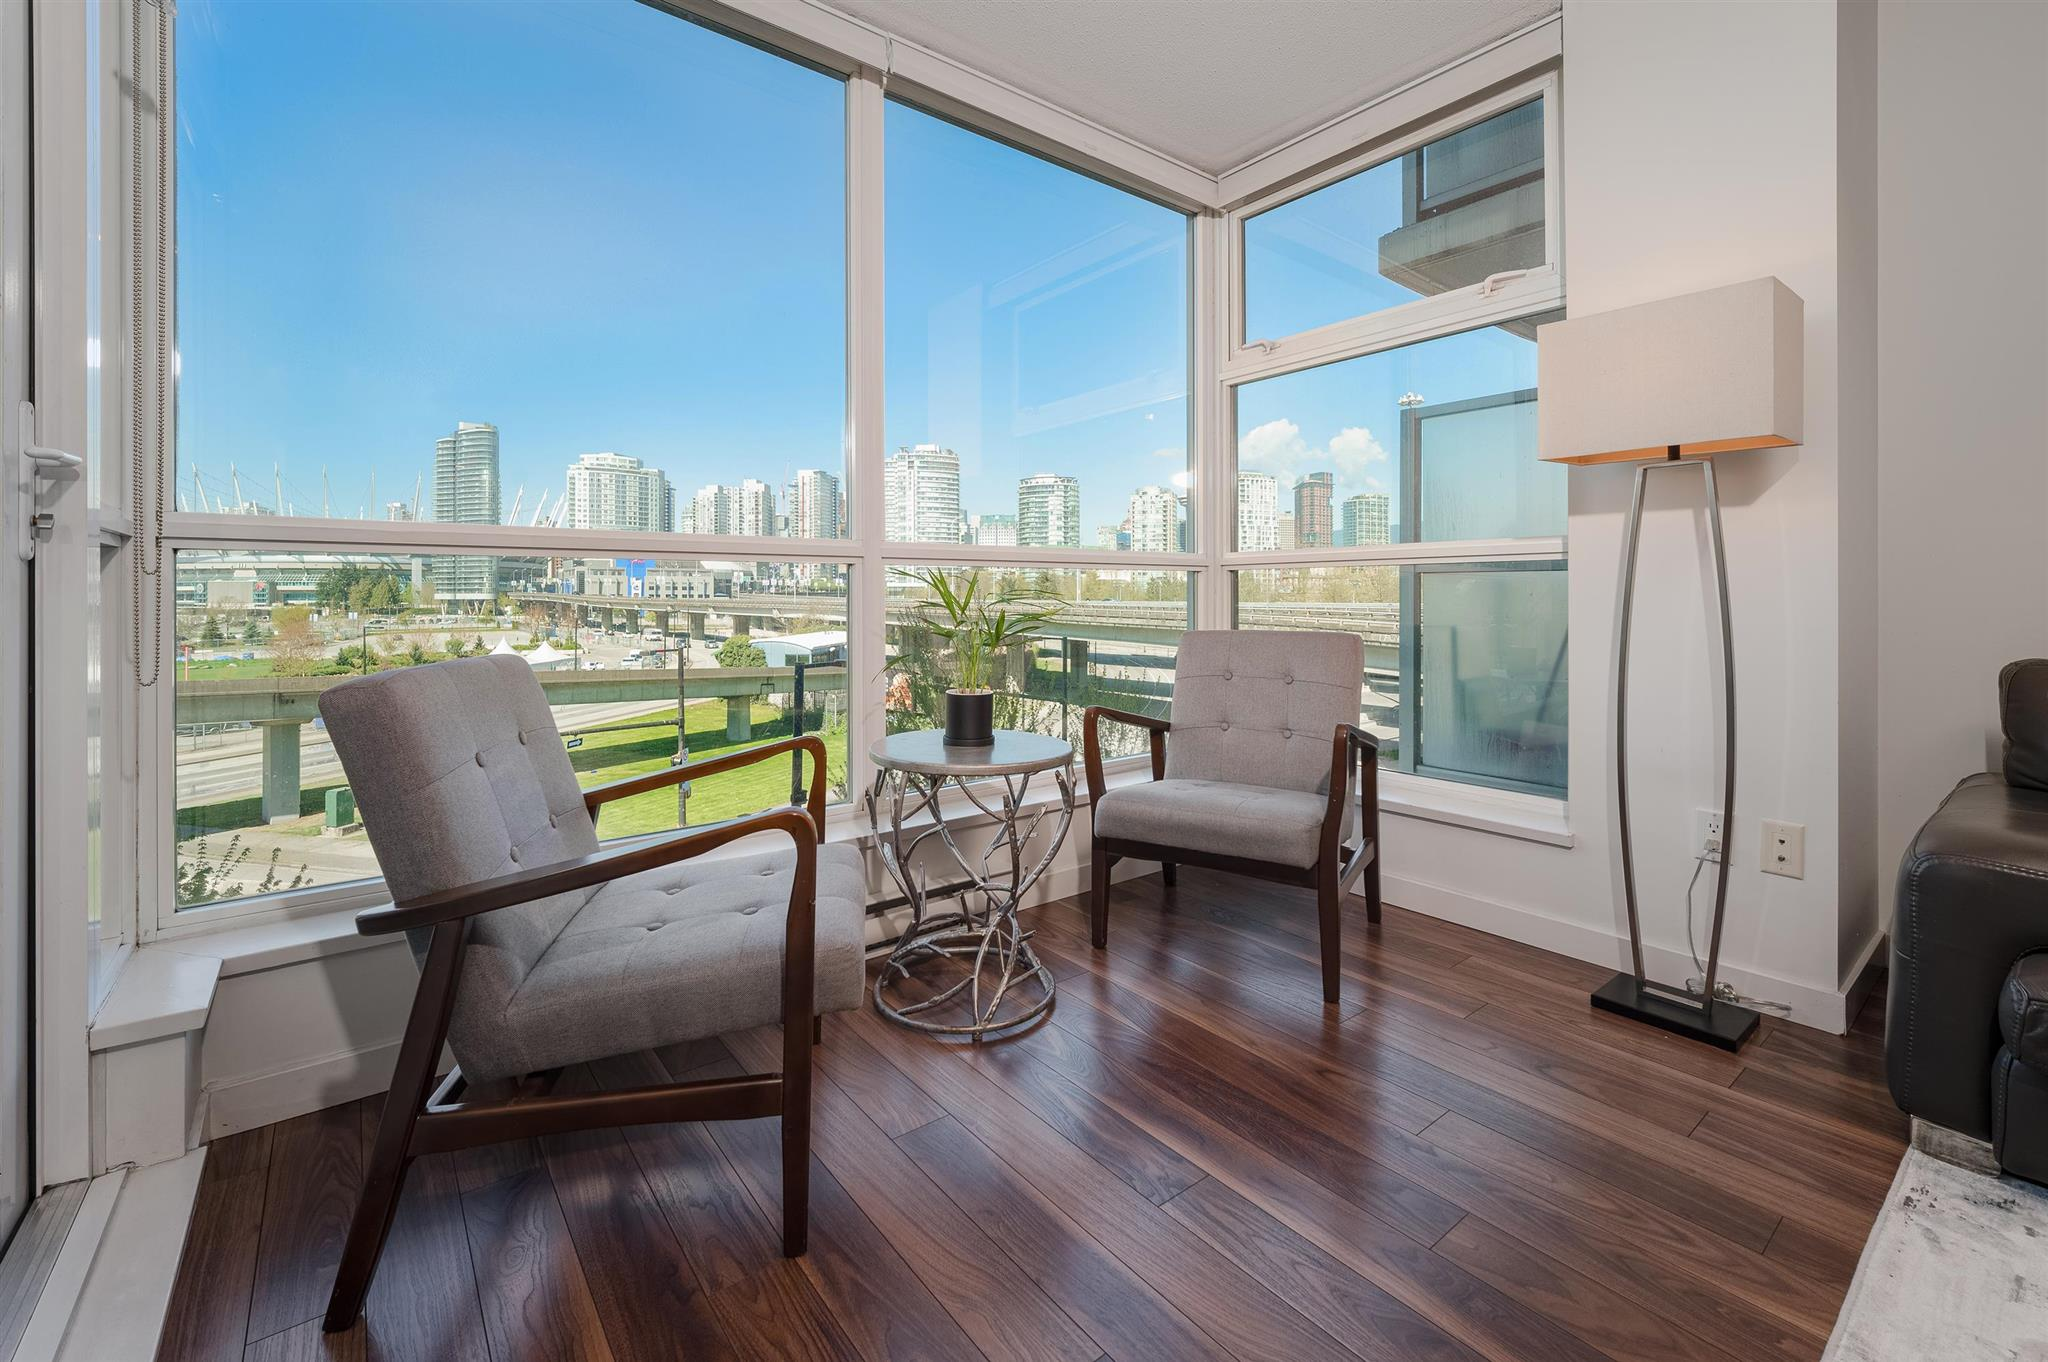 407 125 MILROSS AVENUE - Downtown VE Apartment/Condo for sale, 1 Bedroom (R2600803) - #1